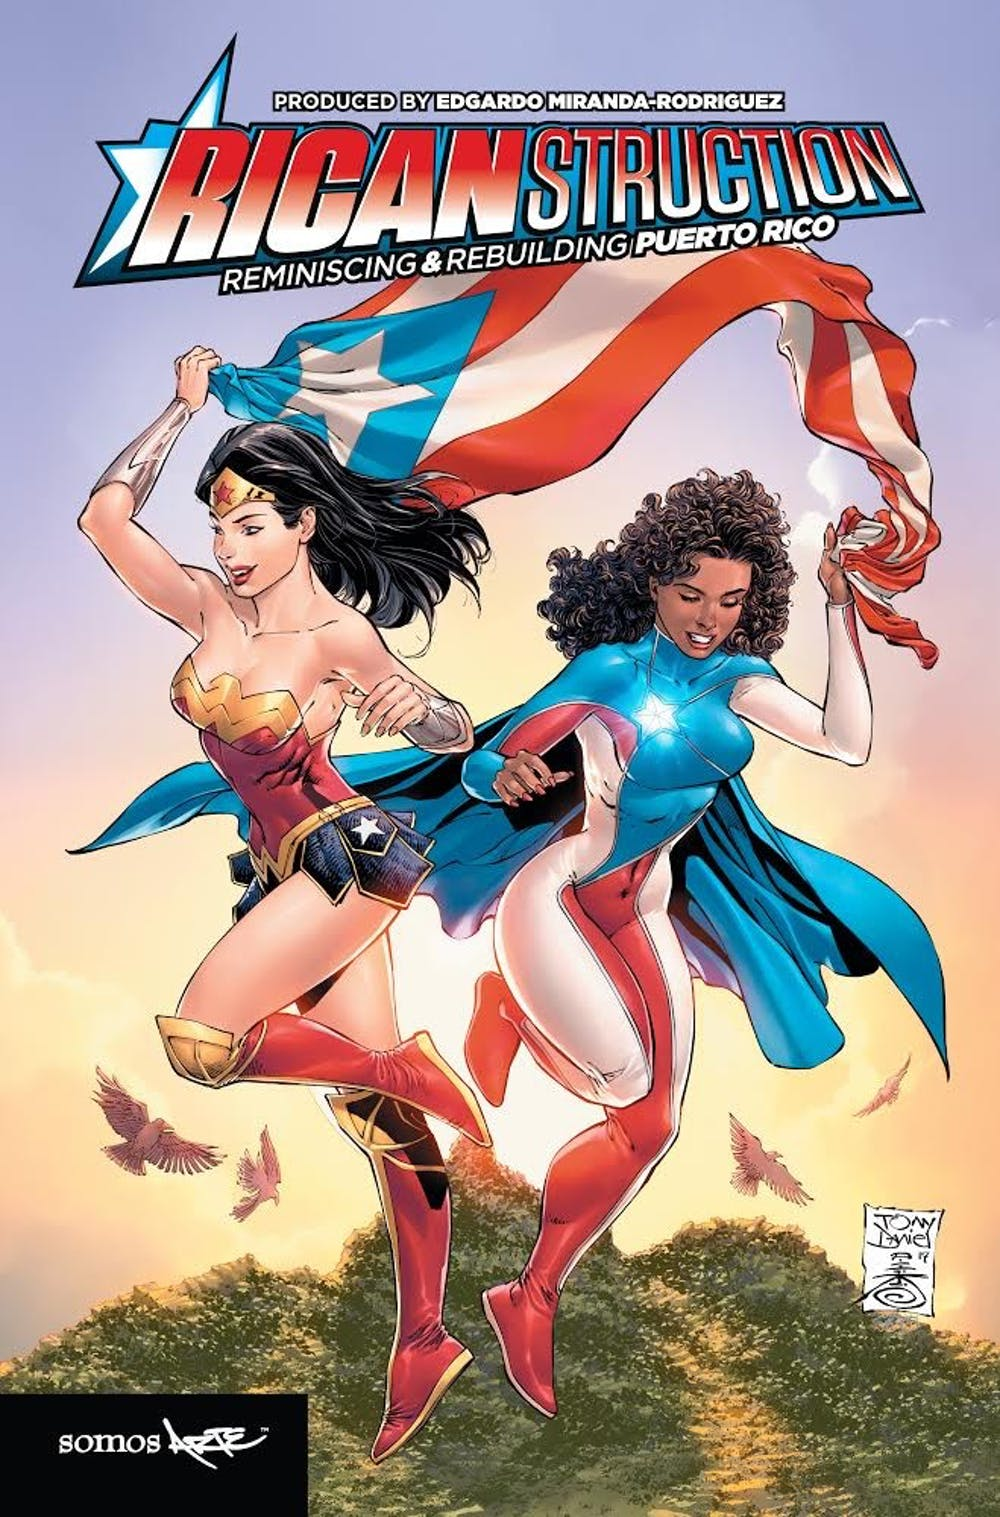 Welcome to the world of La Borinqueña: The Puerto-Rican superhero you need to know